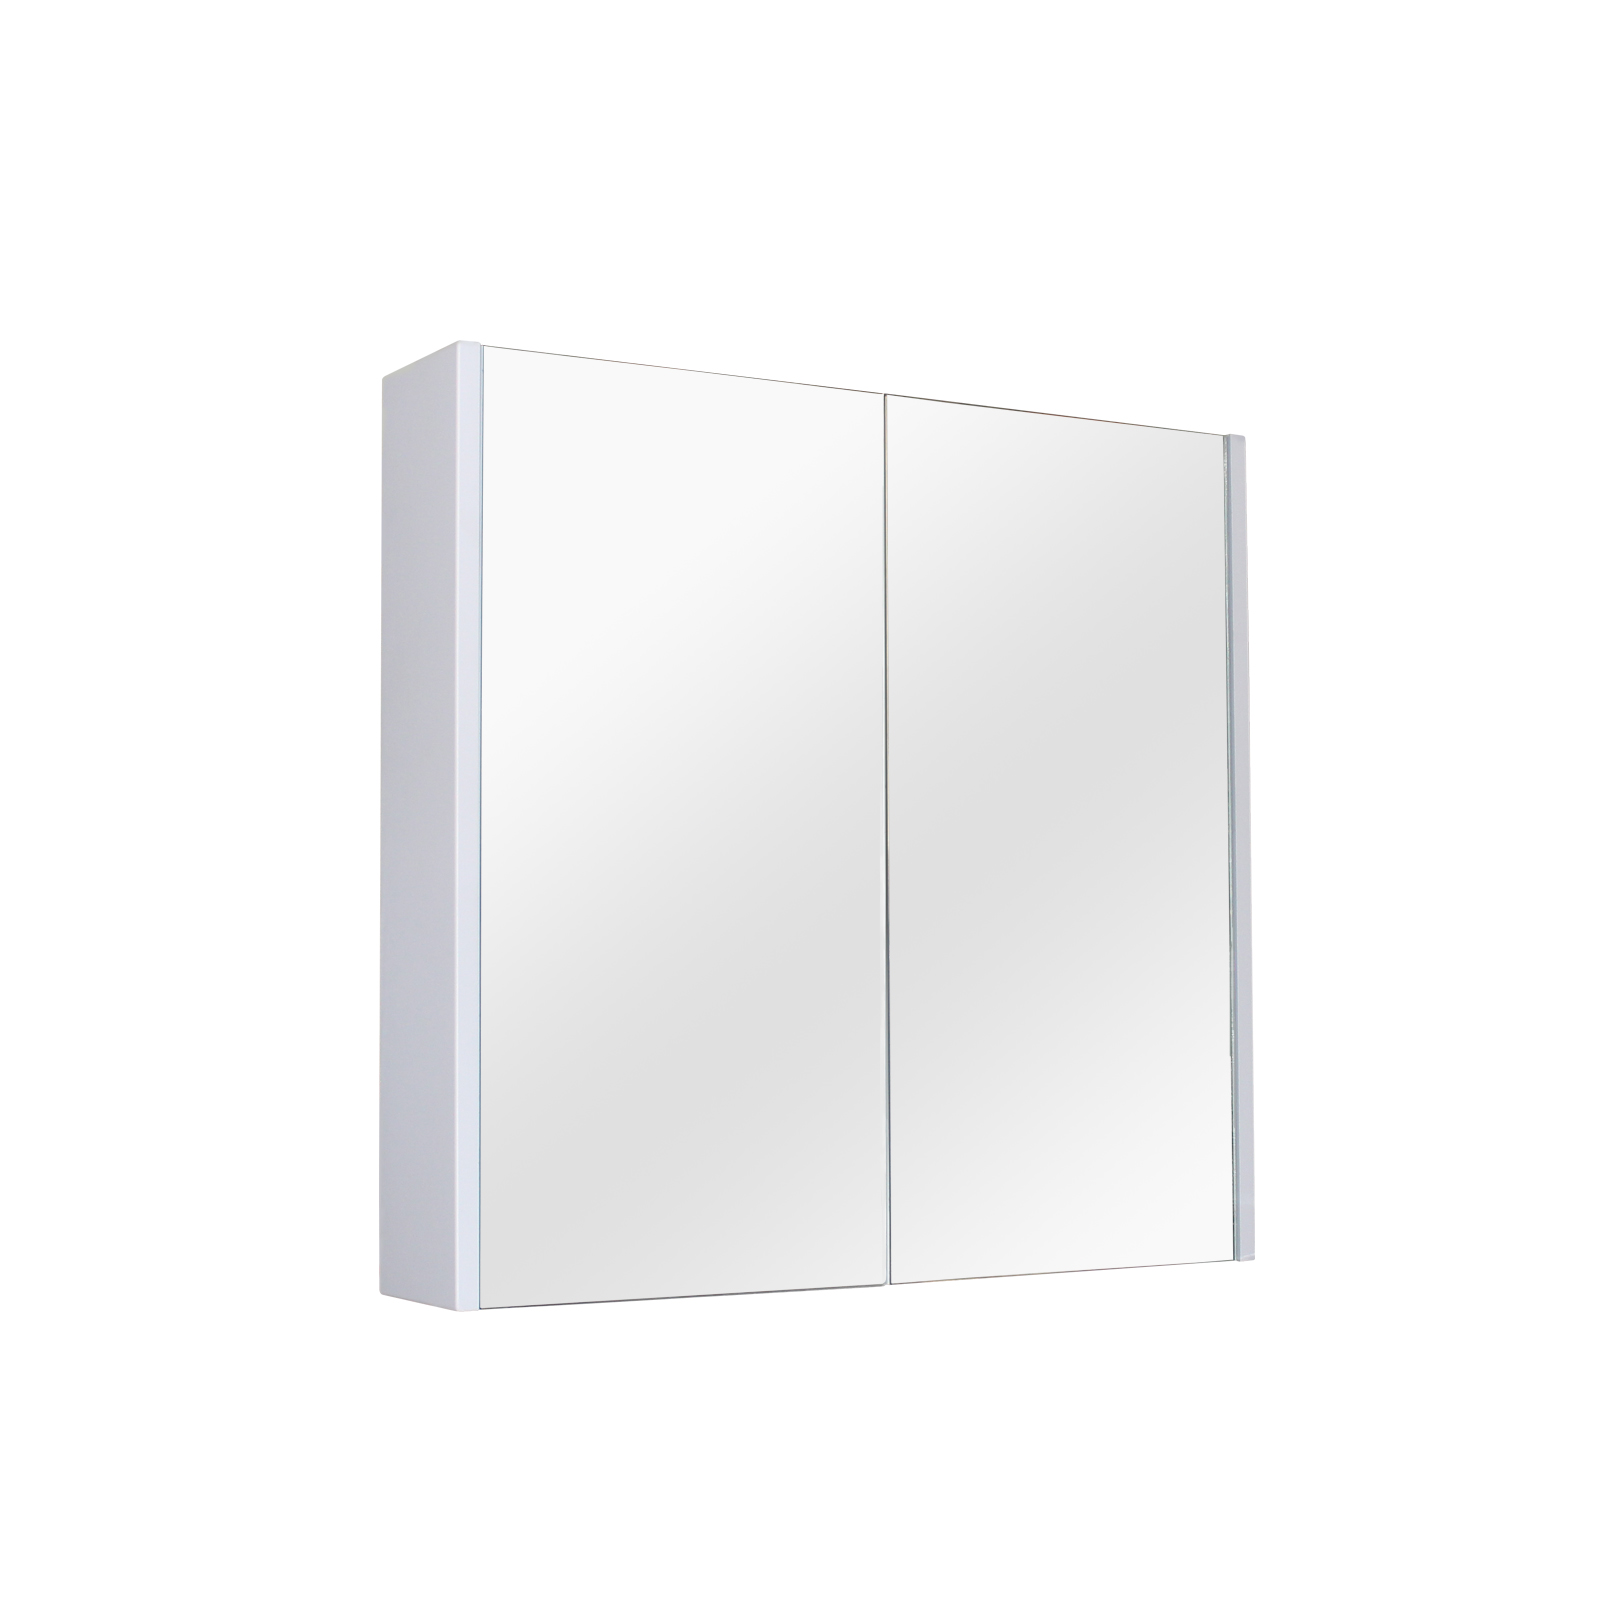 Paris 600 Shaving Cabinet - Matte White